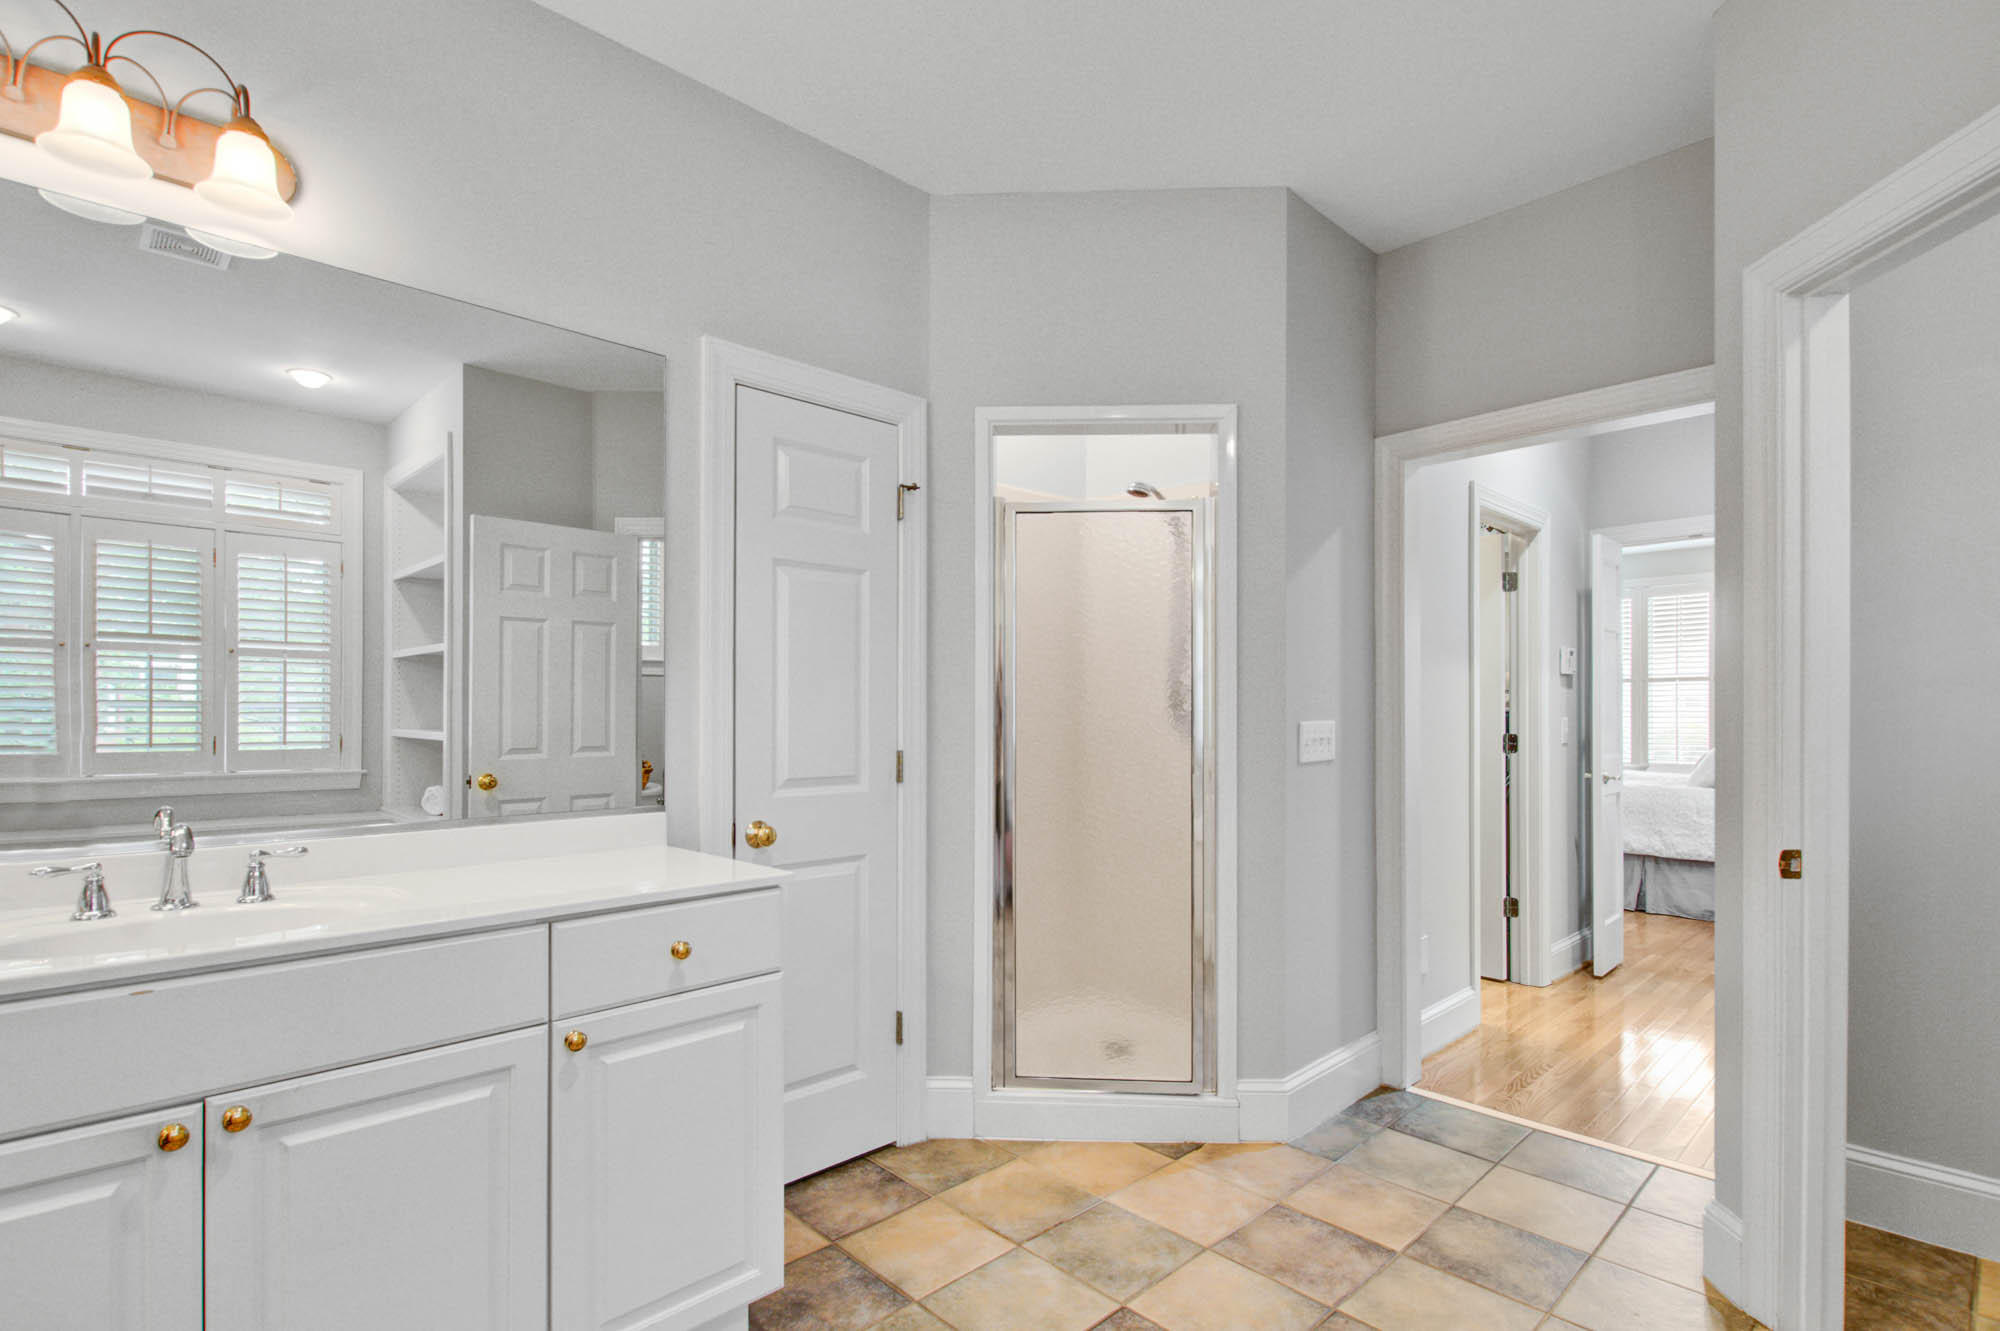 Dunes West Homes For Sale - 2069 Shell Ring, Mount Pleasant, SC - 31